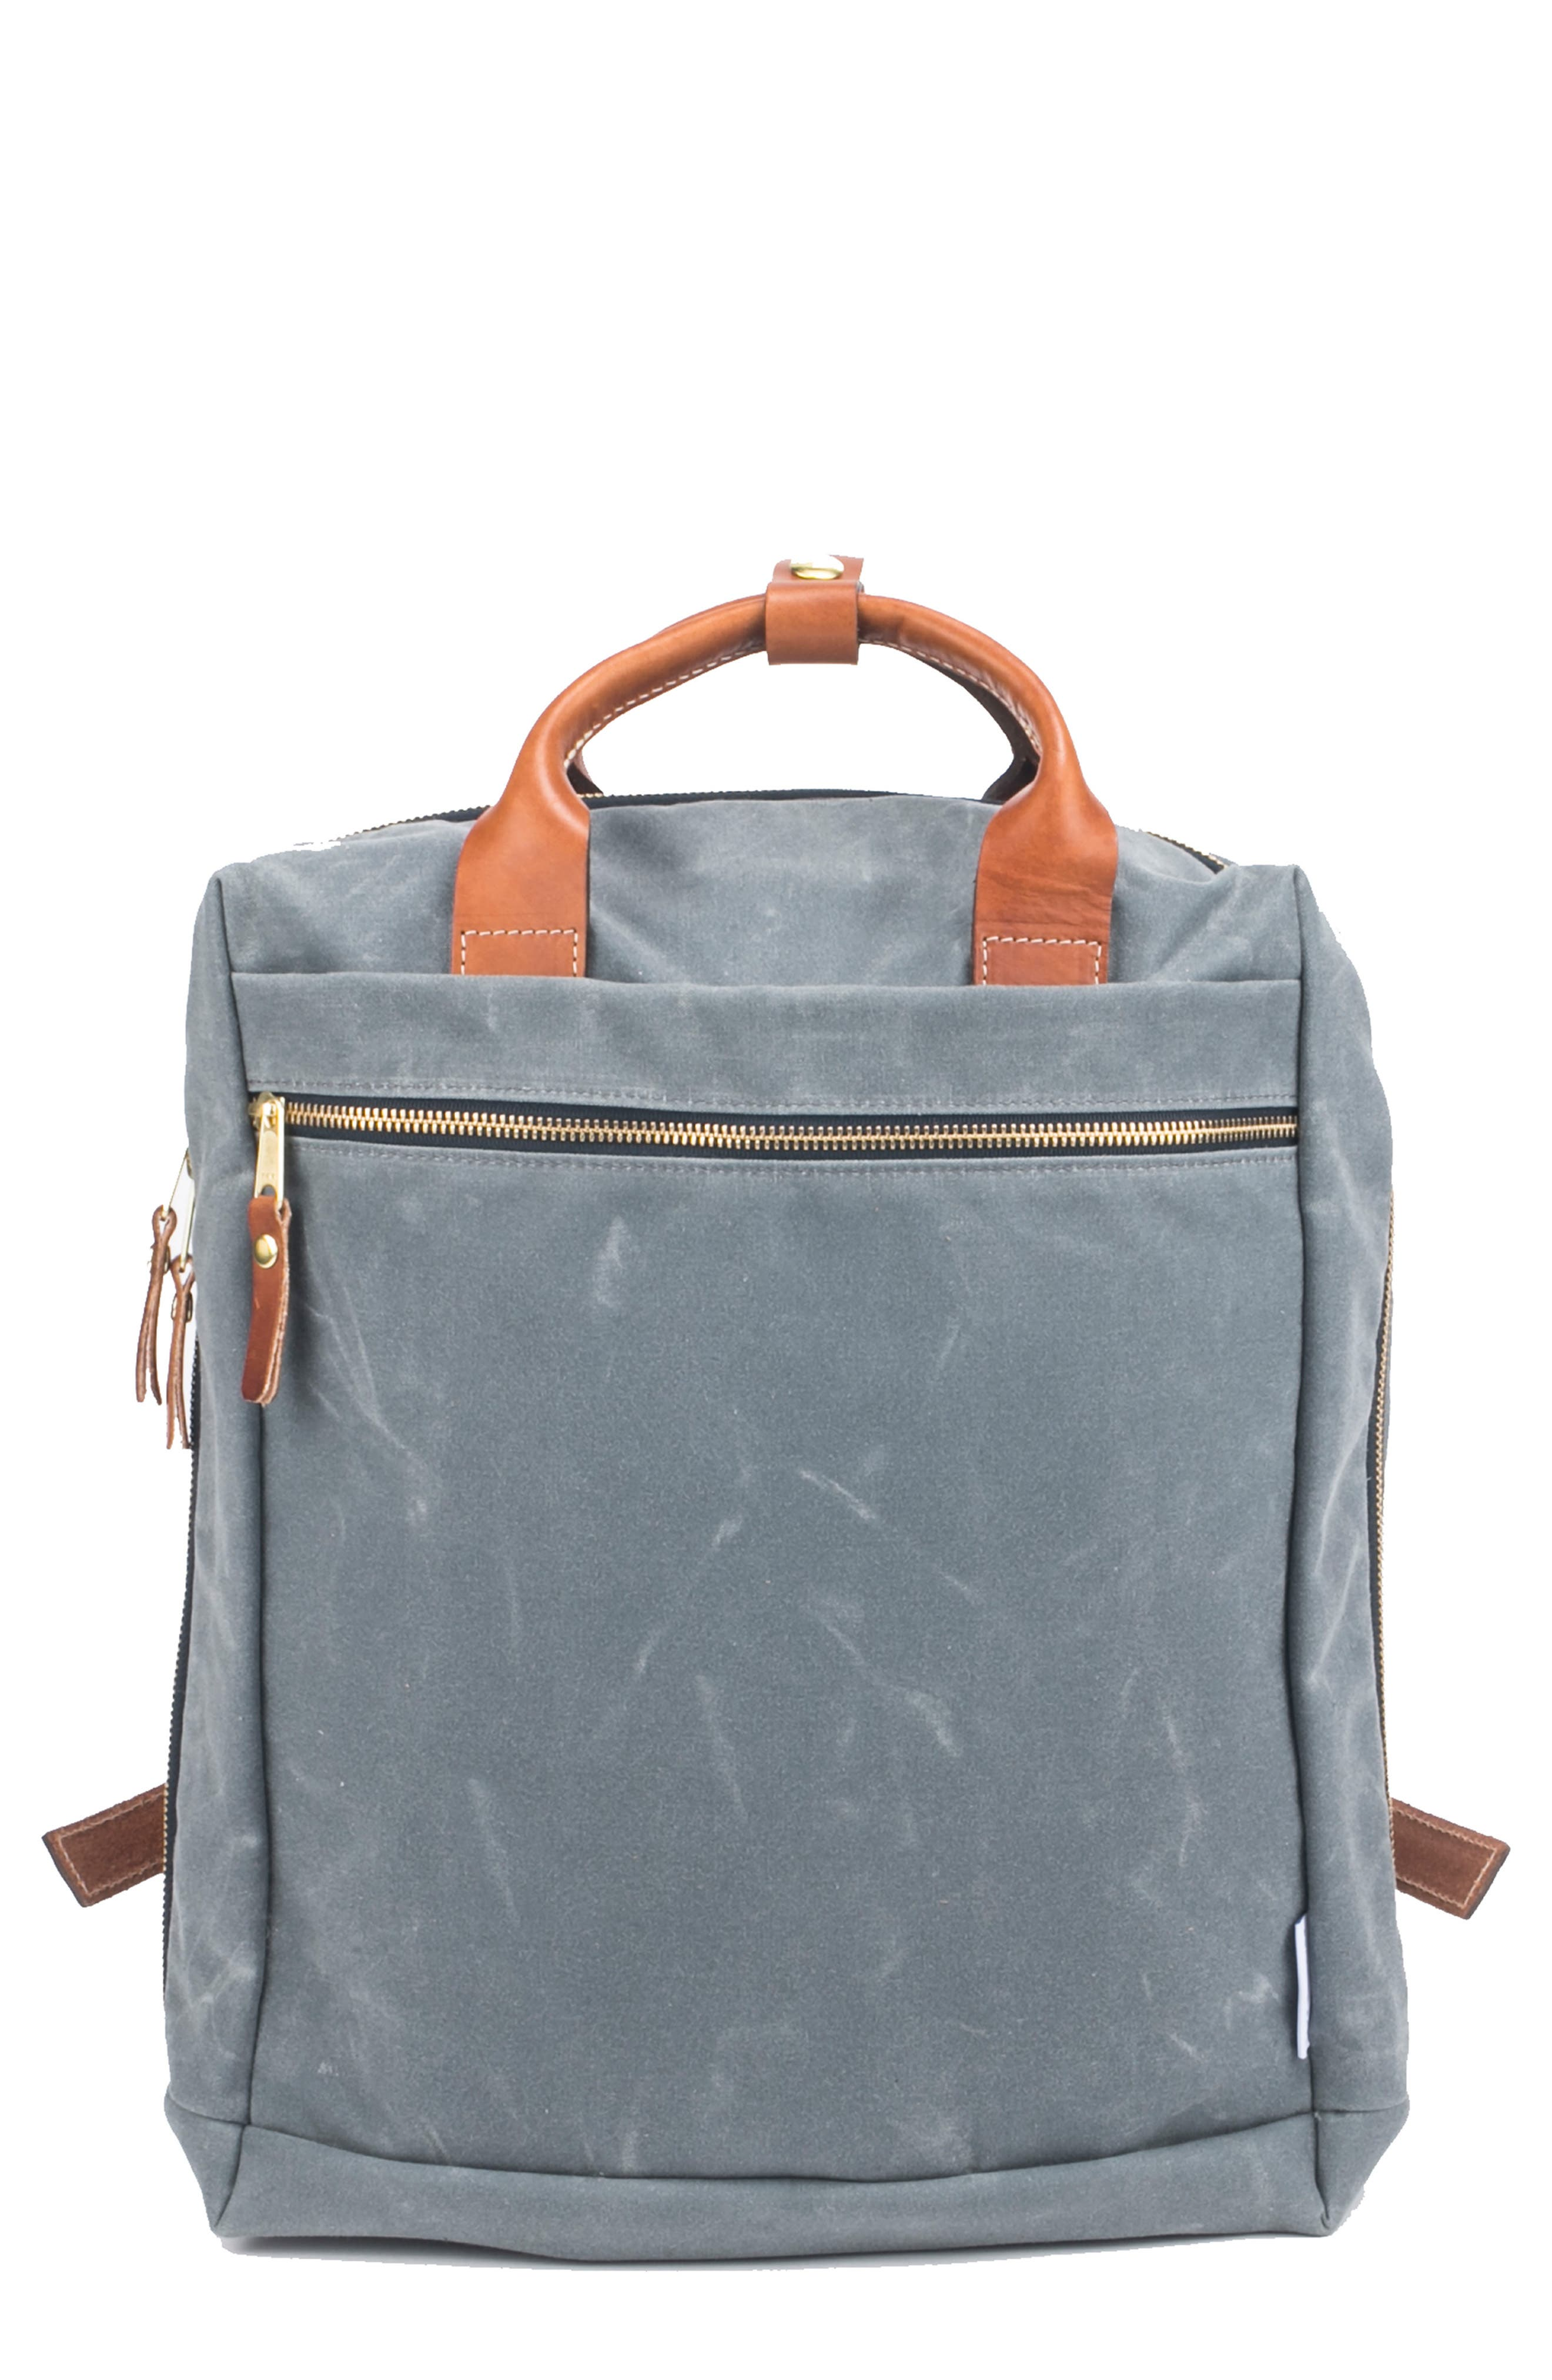 Metro Backpack,                         Main,                         color, CHARCOAL